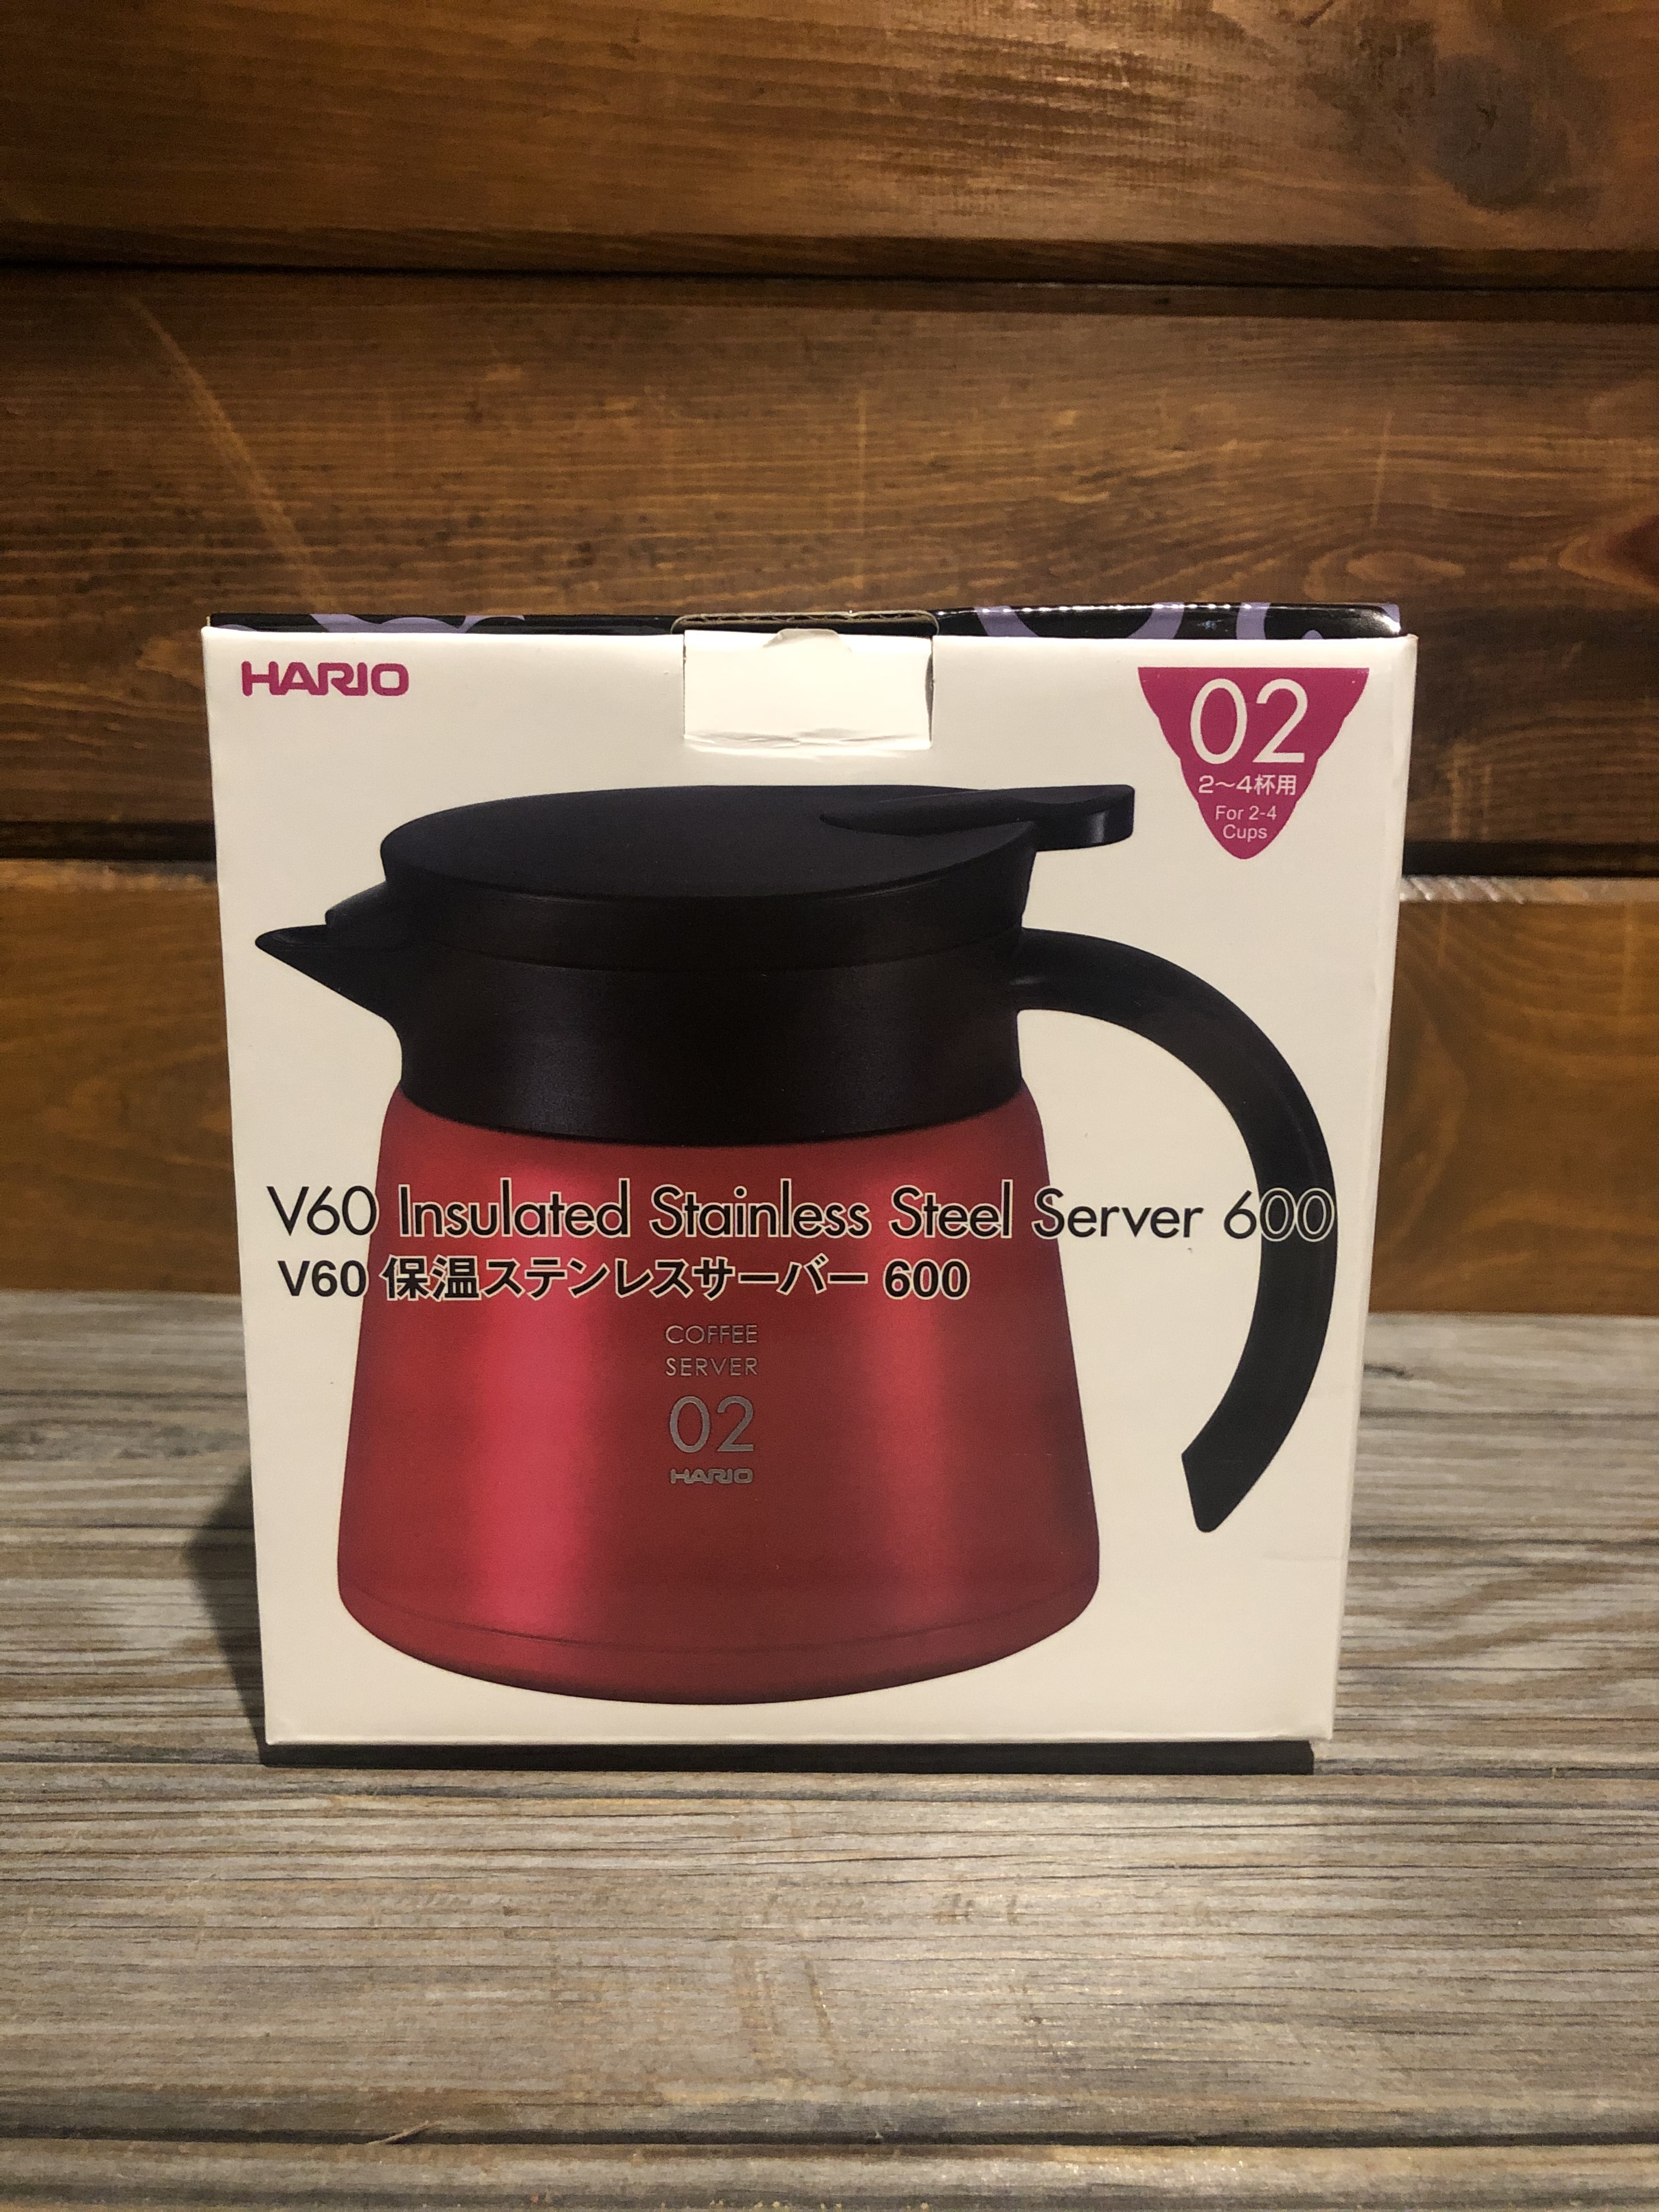 Picture Hario V60 Insulated Stainless Steel Server